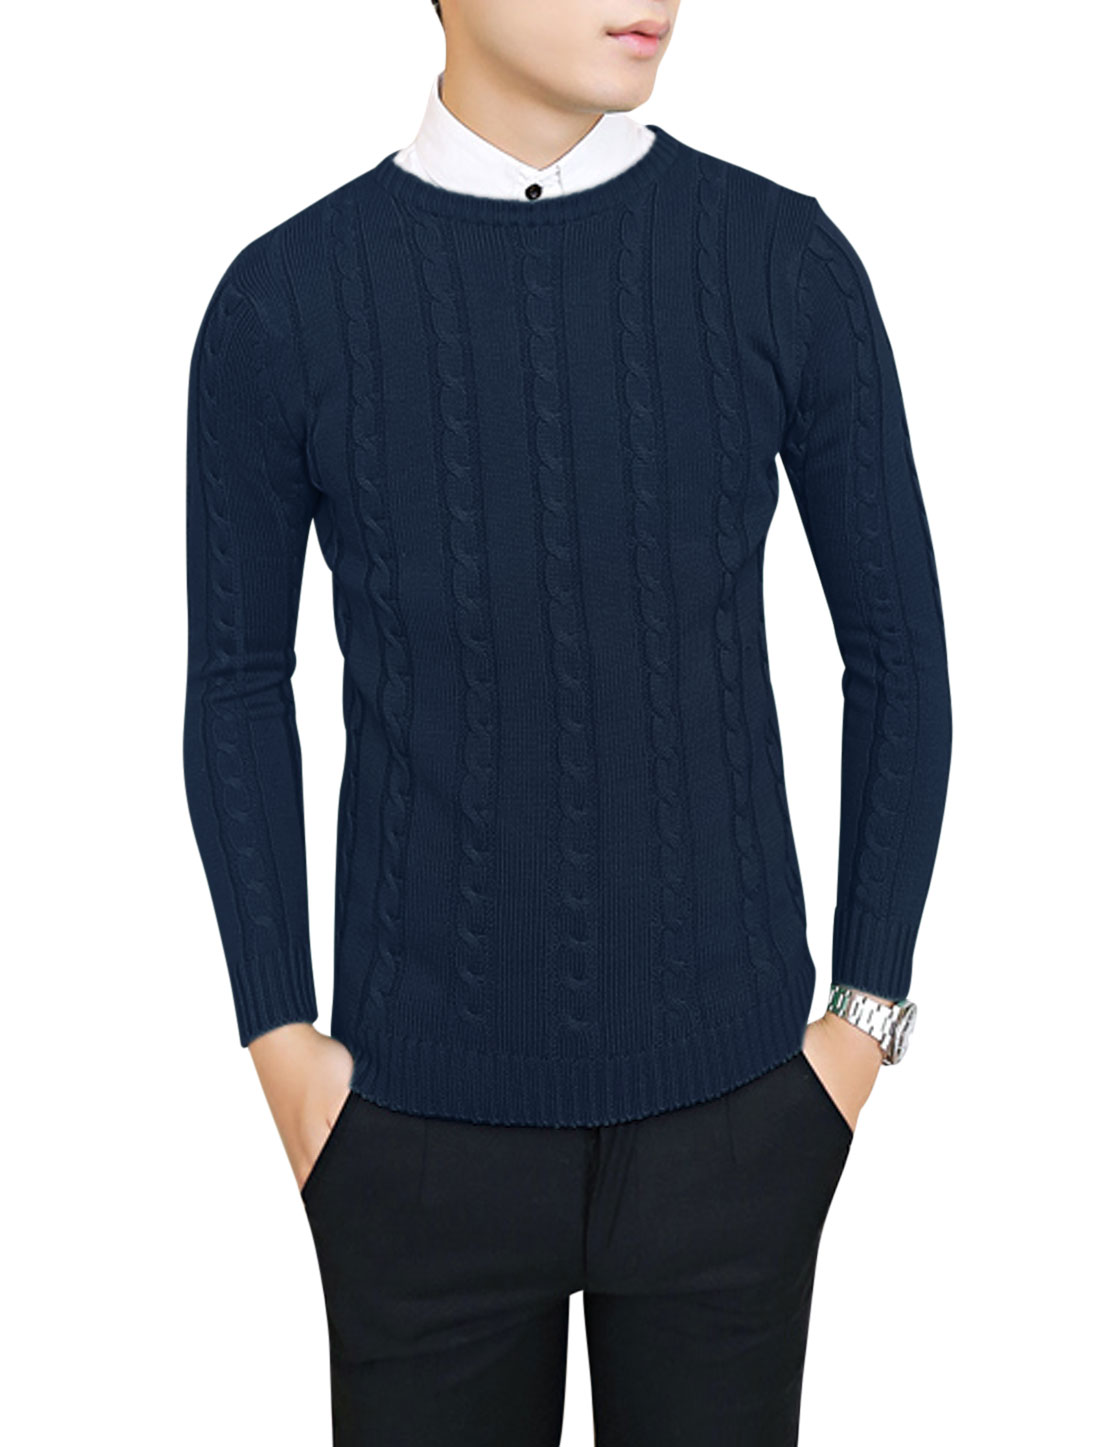 Men Crew Neck Long Sleeve Slipover Leisure Sweater Navy Blue S